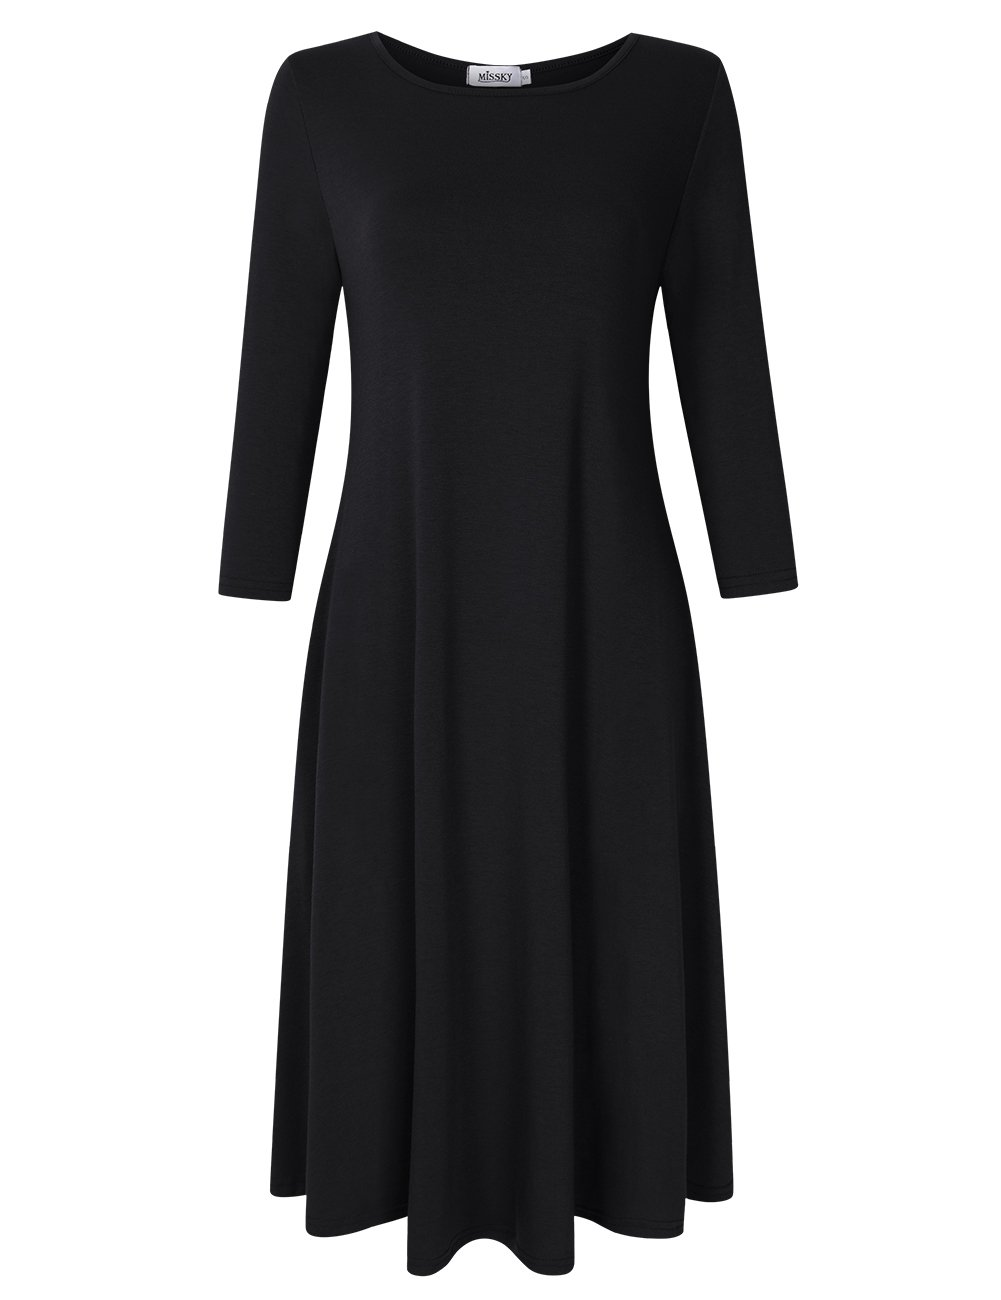 MISSKY Black Dresses for Women Long Sleeve Pocket Plus Size Swing Casual Dresses for Women Black L by MISSKY